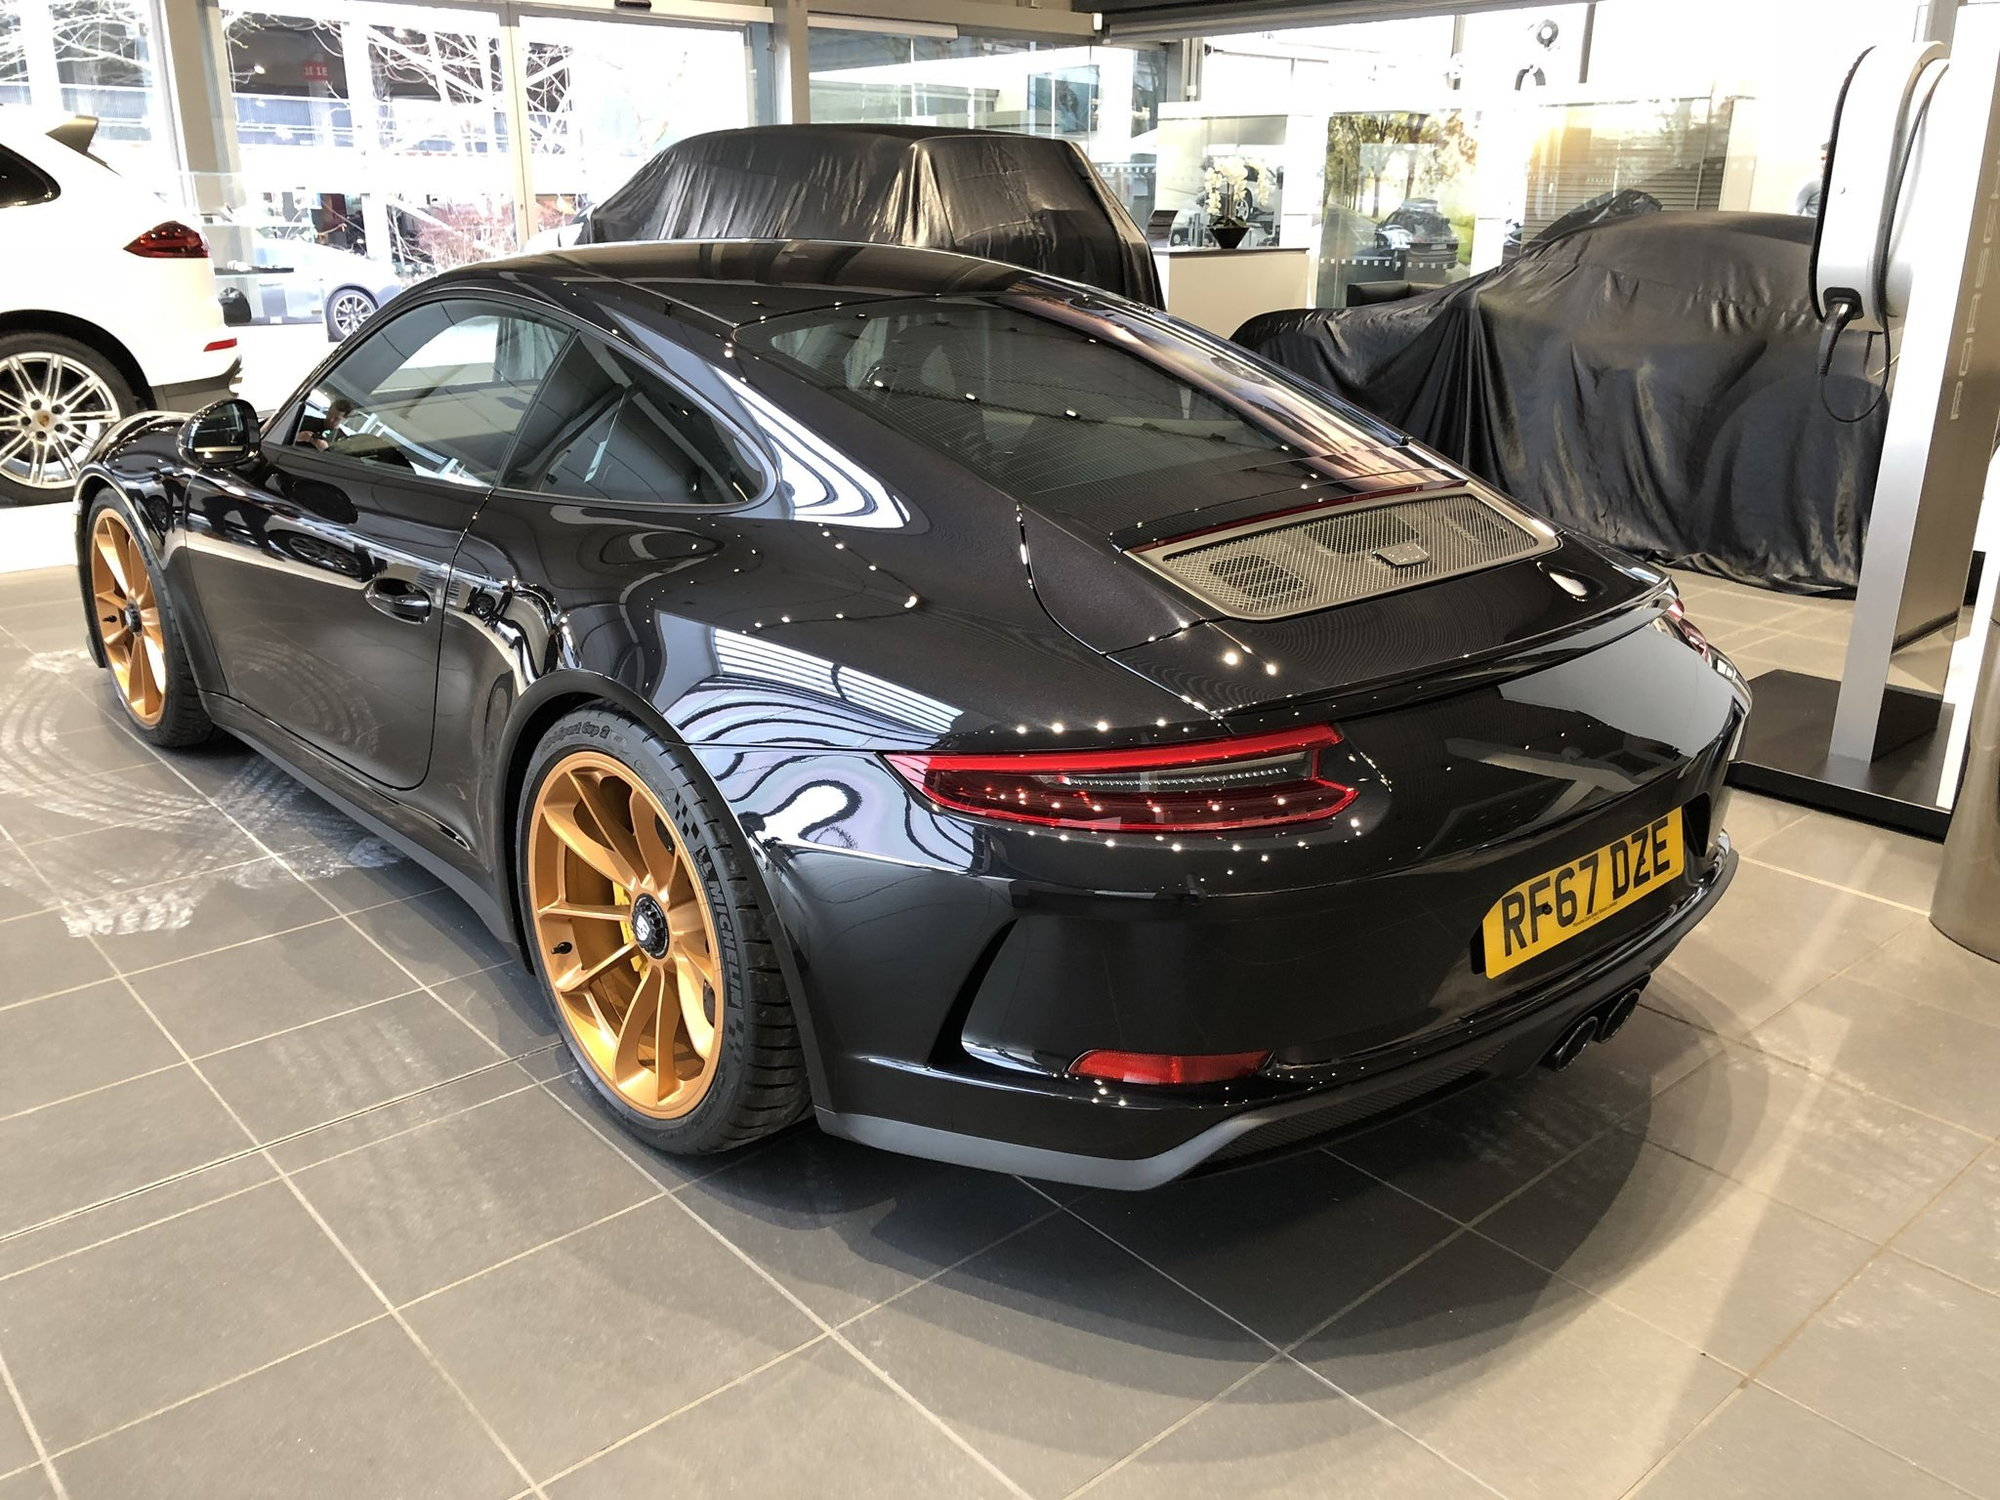 chris harris joined the gt3 touring club page 2 rennlist porsche discussion forums. Black Bedroom Furniture Sets. Home Design Ideas